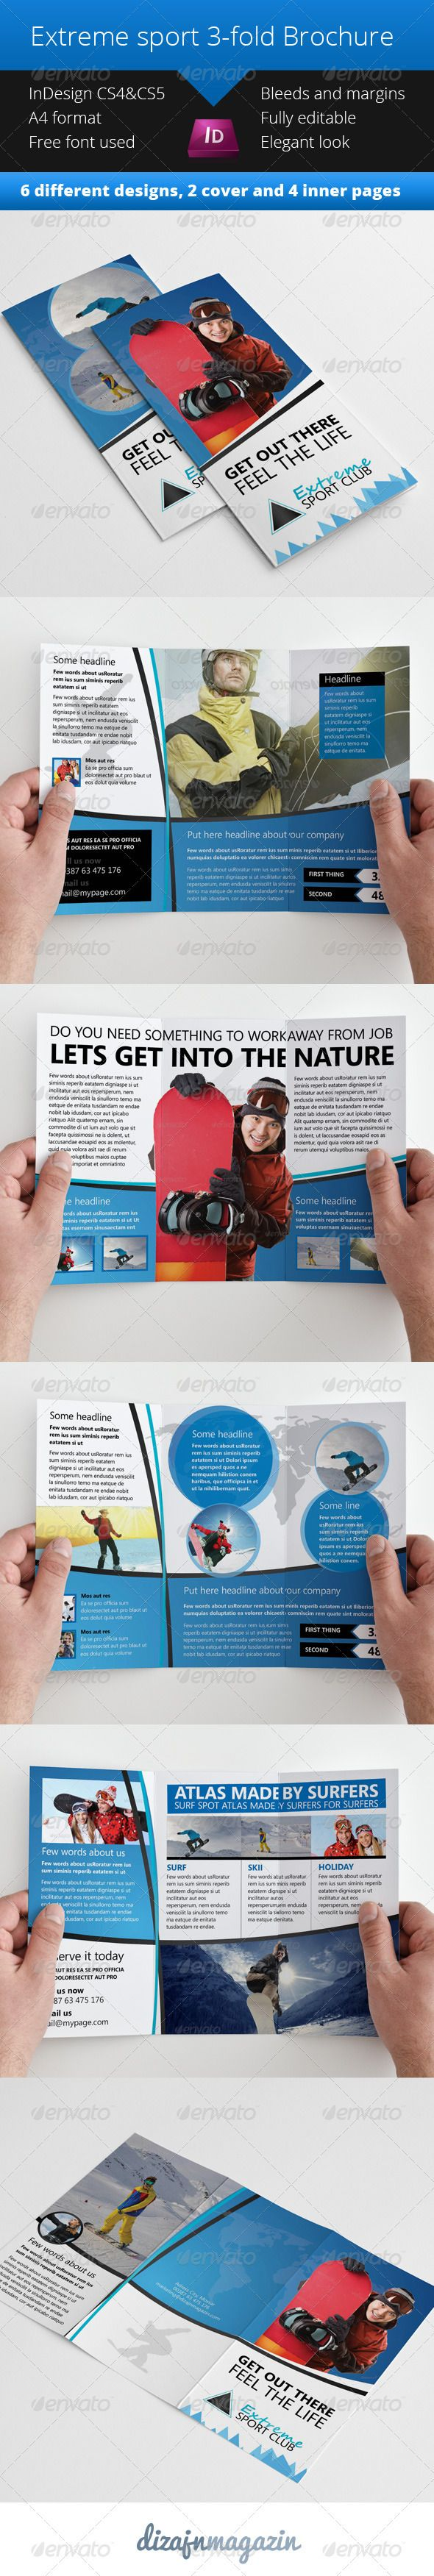 17 best images about print templates on pinterest for Sports brochure templates